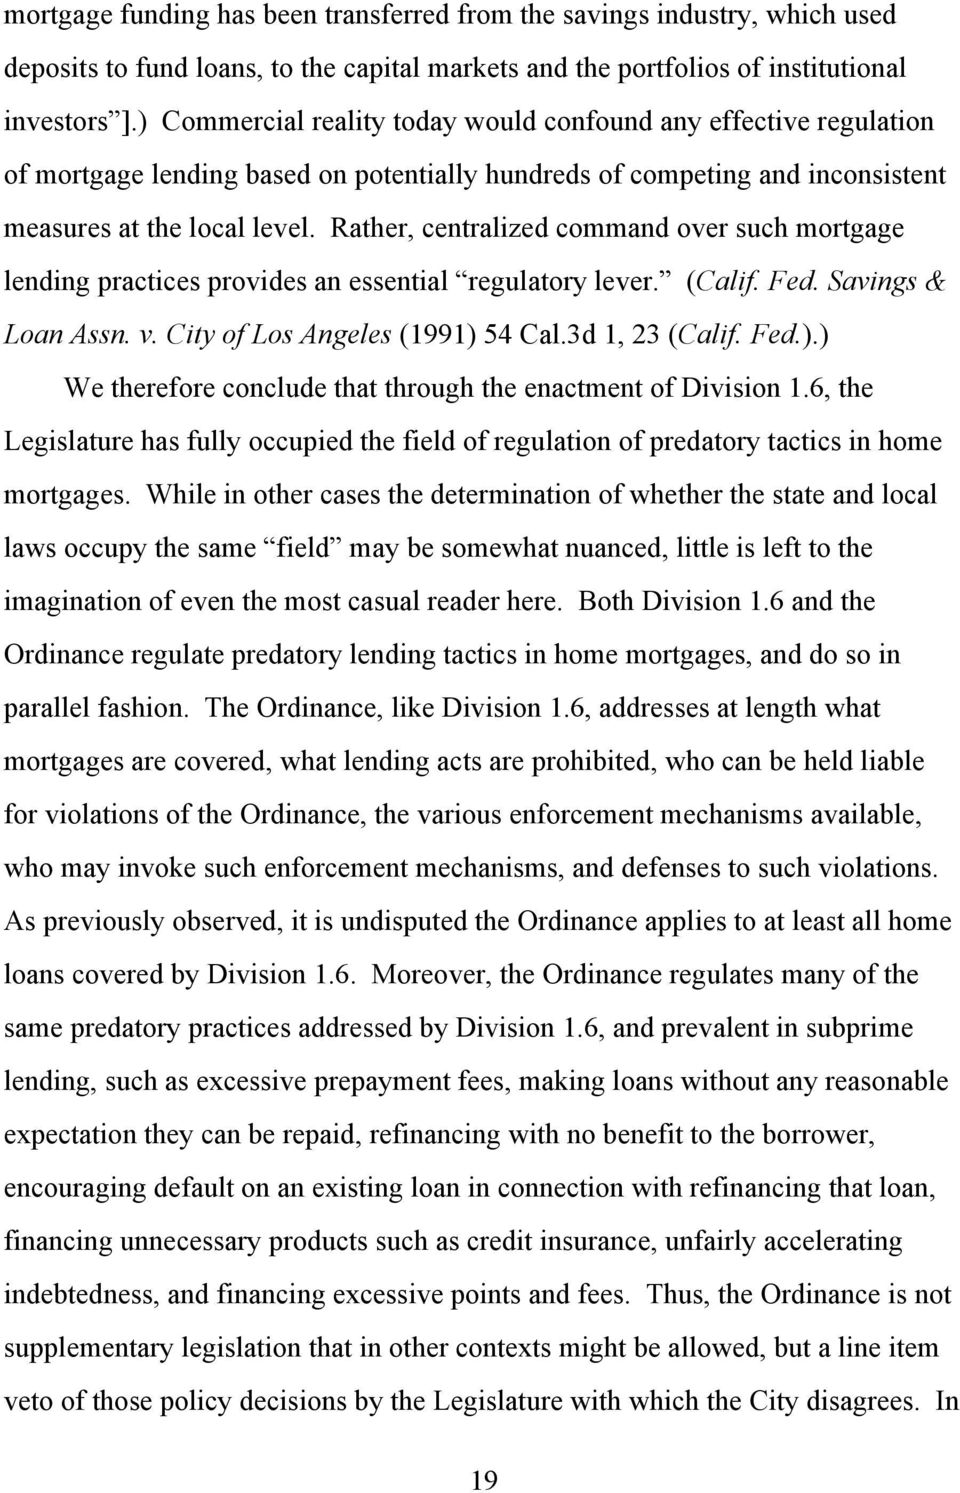 Rather, centralized command over such mortgage lending practices provides an essential regulatory lever. (Calif. Fed. Savings & Loan Assn. v. City of Los Angeles (1991)